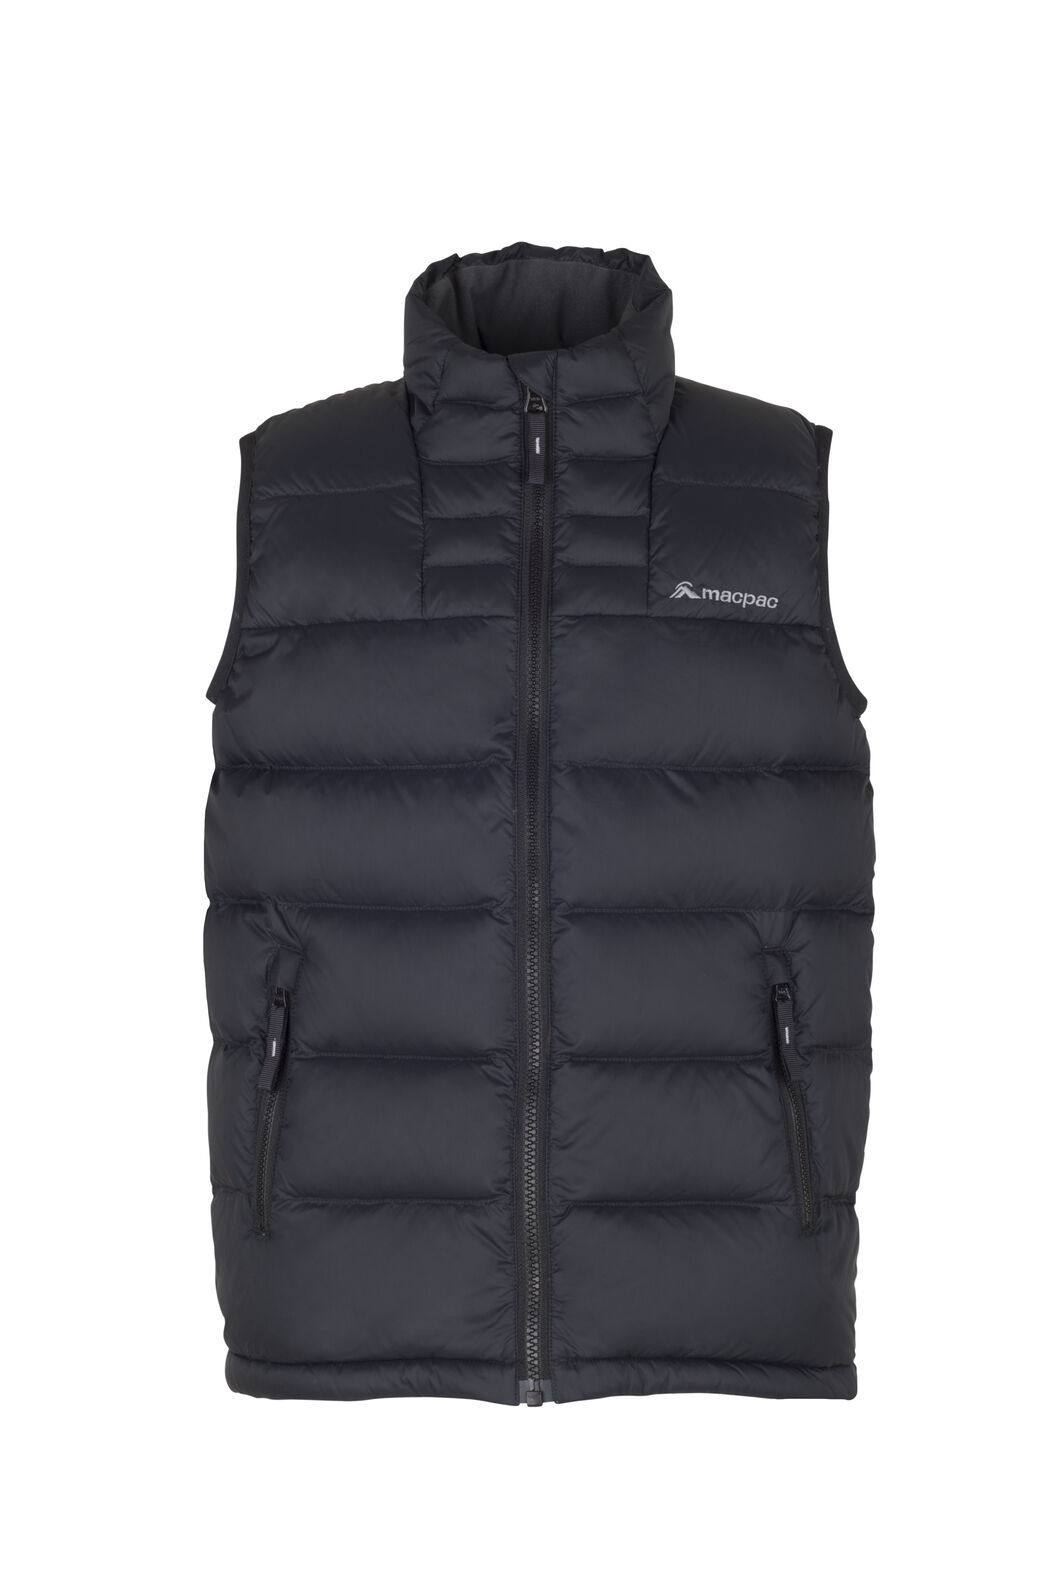 Macpac Atom Down Vest - Kids', Black, hi-res